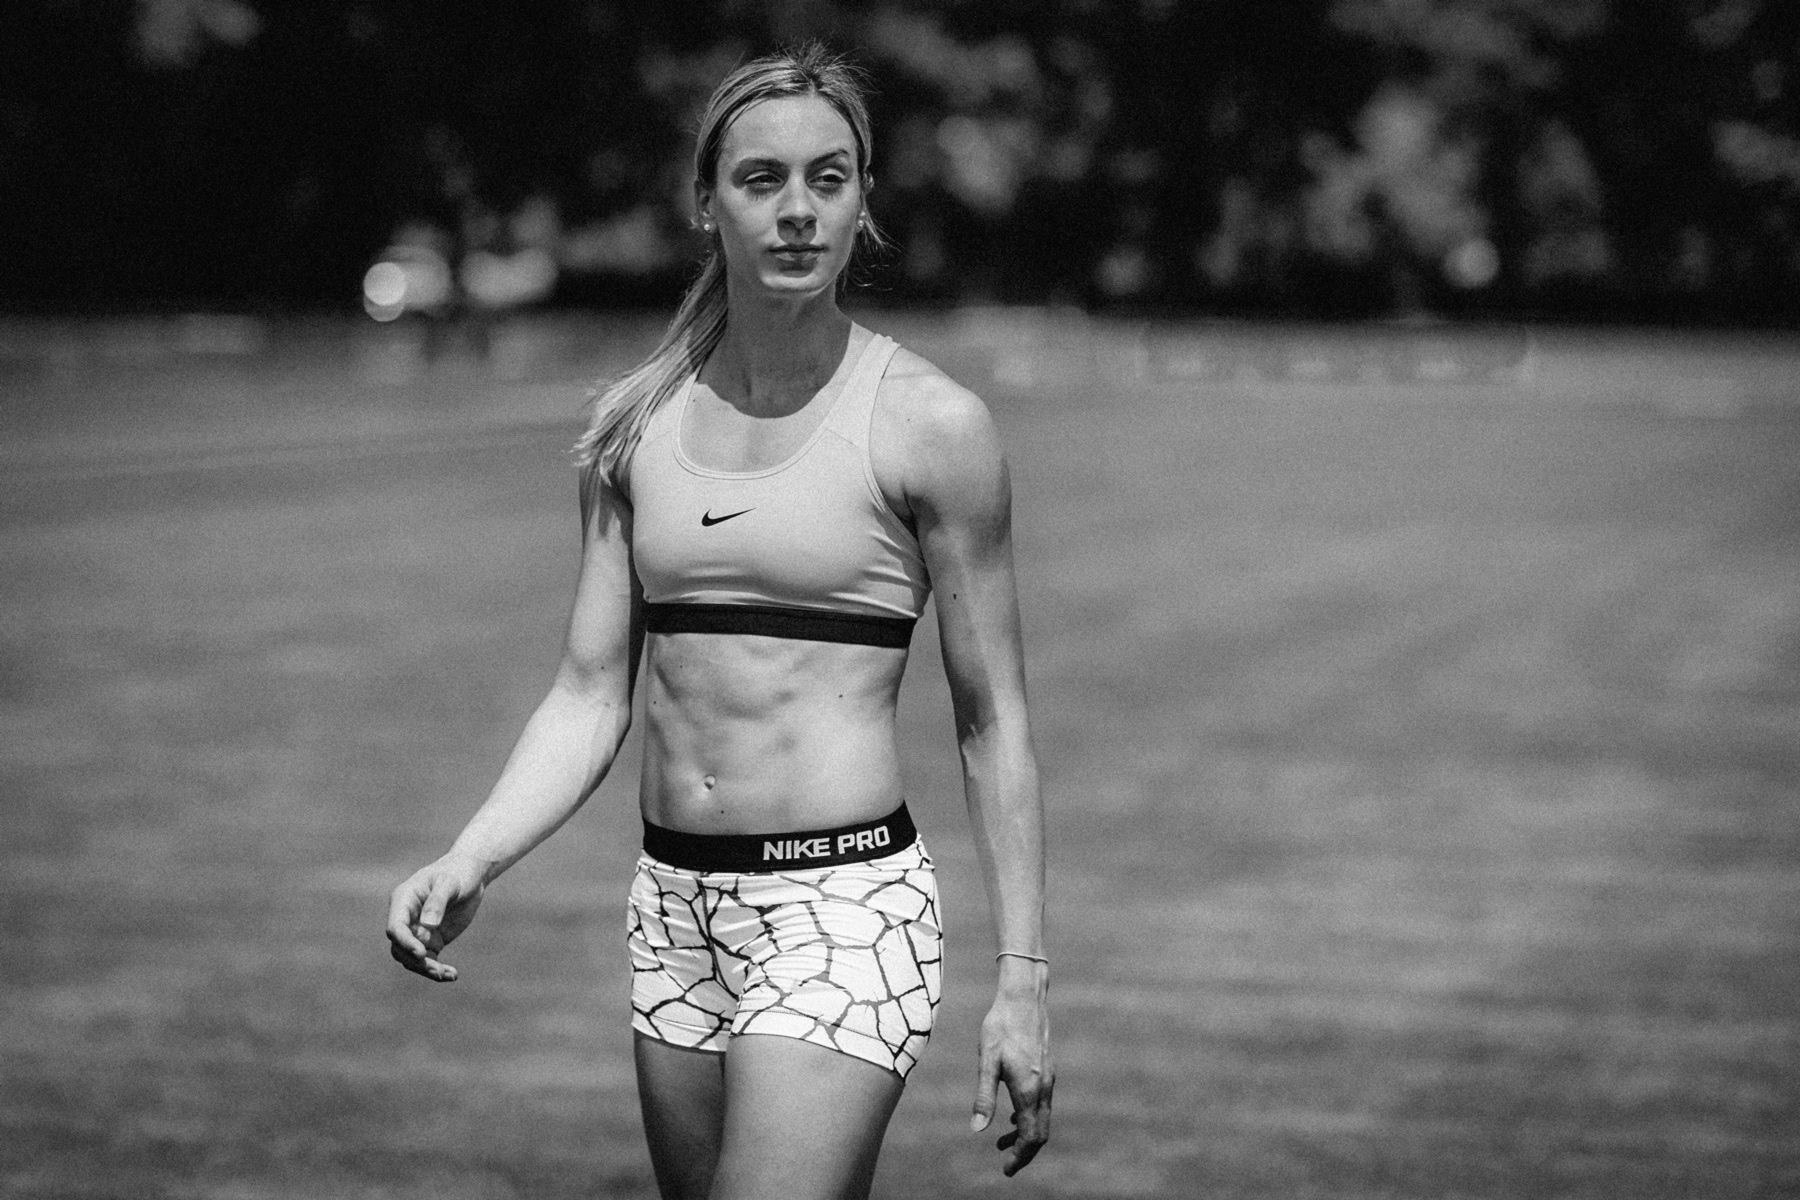 ­photo, photos, photography, photographer, photographers, woman, women, blonde, athletic, athletic wear, sportswear, shadow, muscles, blur, blurred background, black and white, blackandwhite, bw, althete